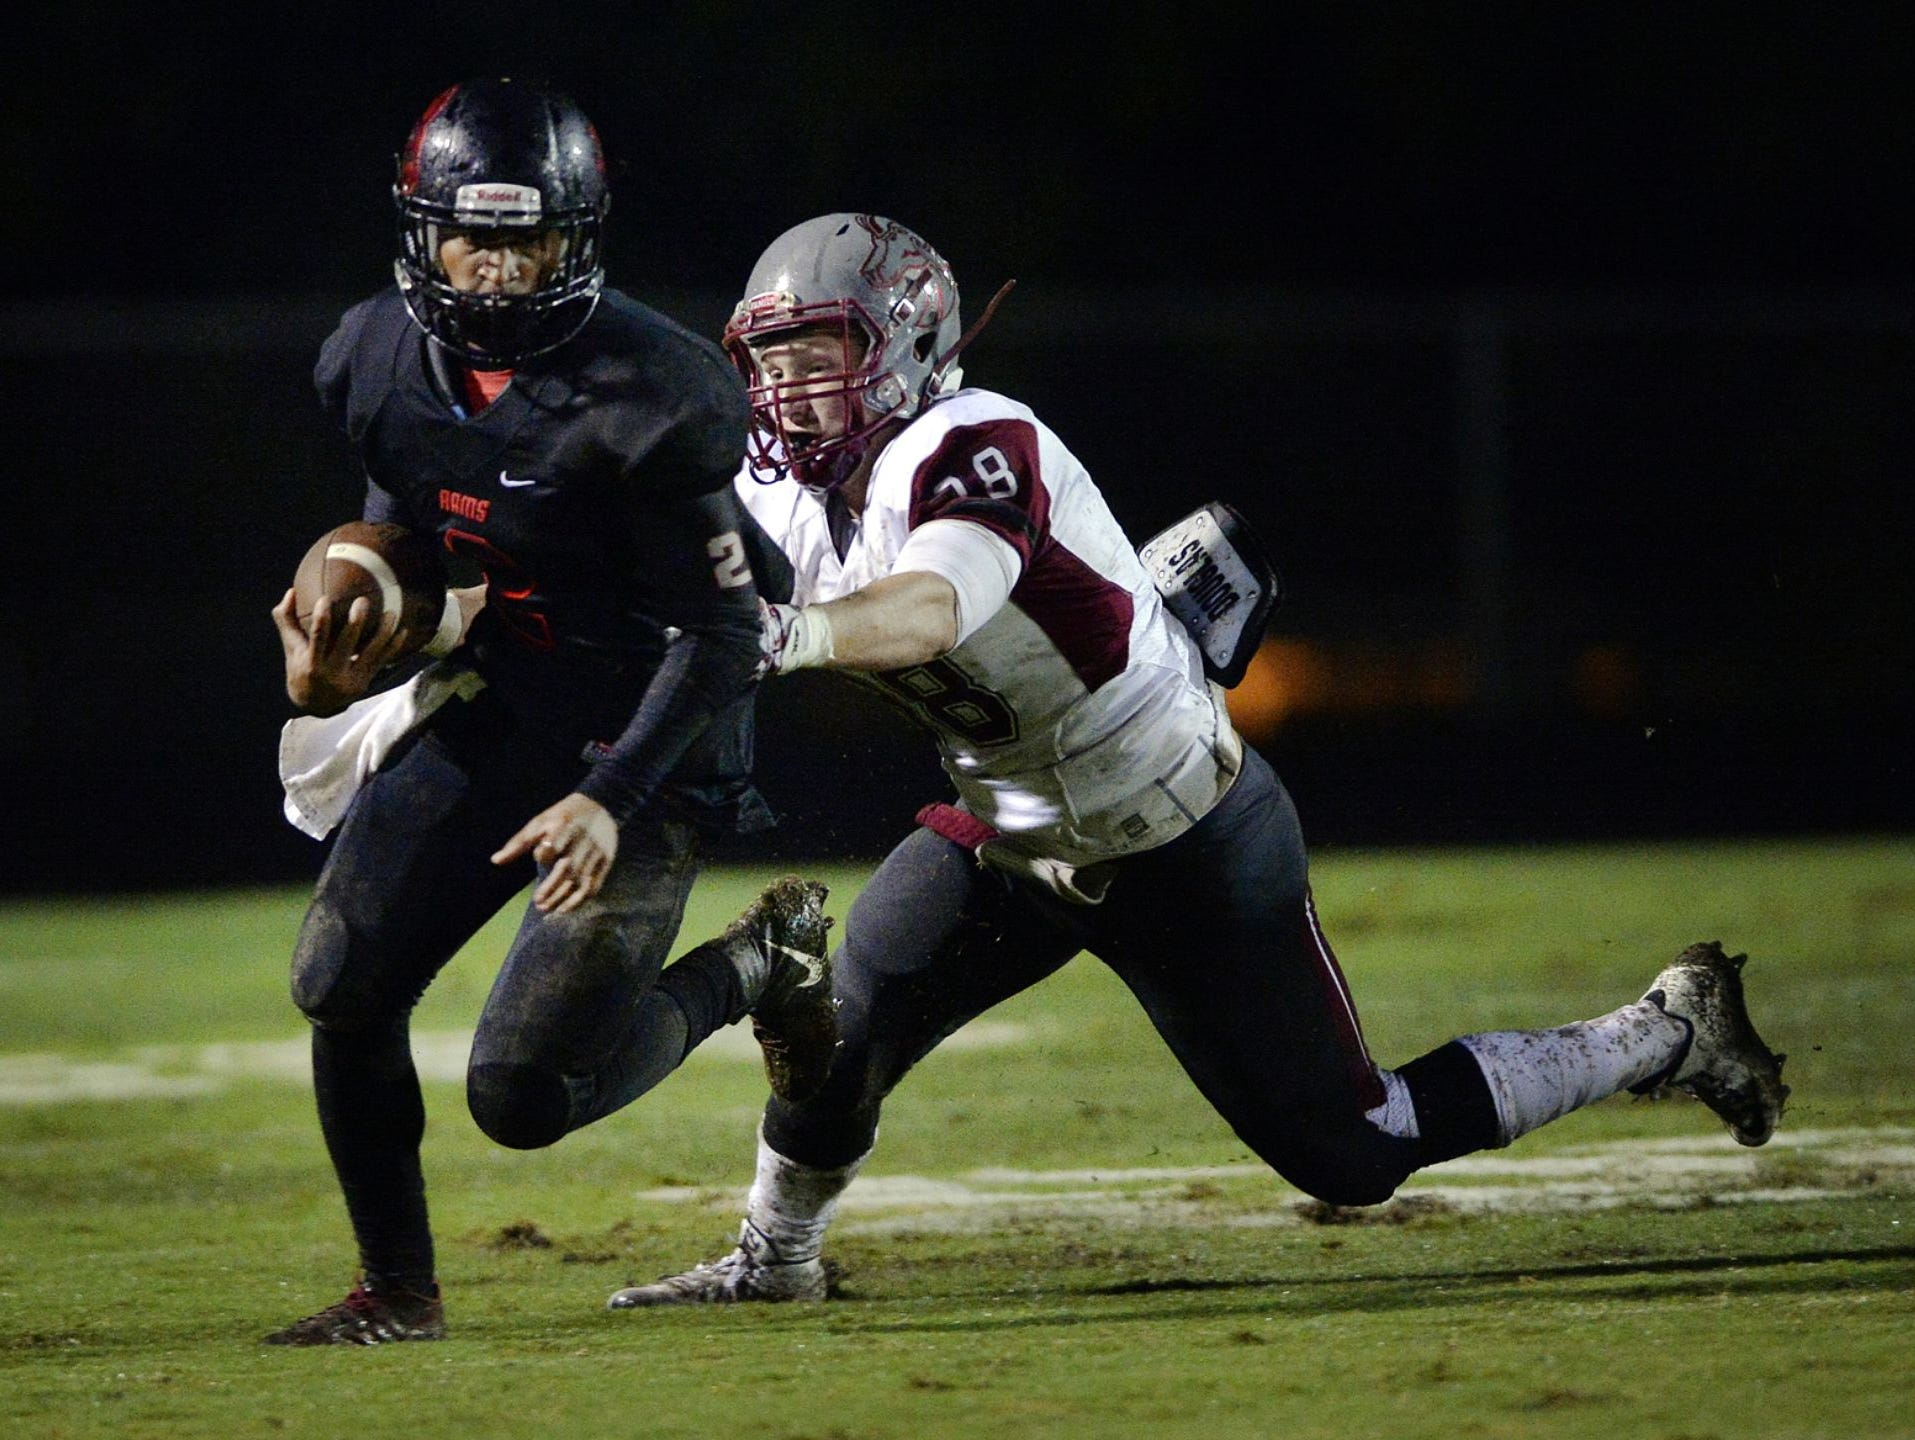 Wide receiver Brian Spurgeon (2) and the Hillcrest Rams hope to get back on the winning side Friday when they host Greenville at Chandler Stadium.